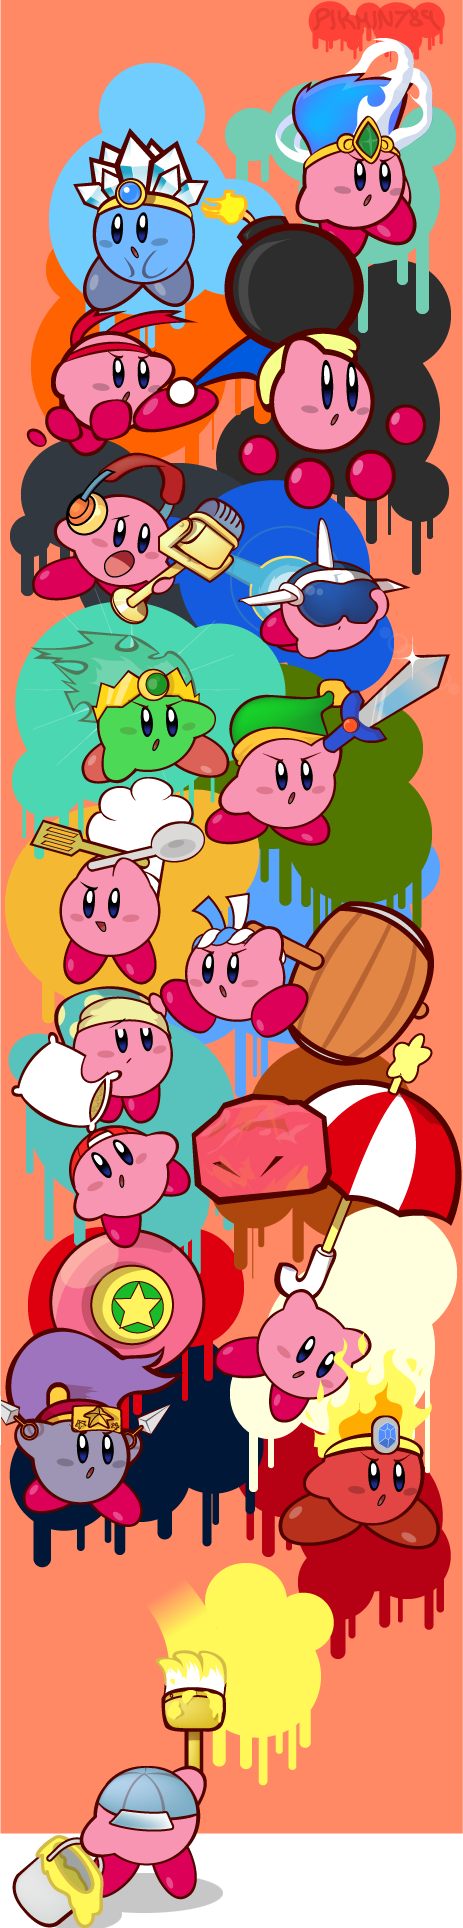 Kirby's Mural by pikmin789